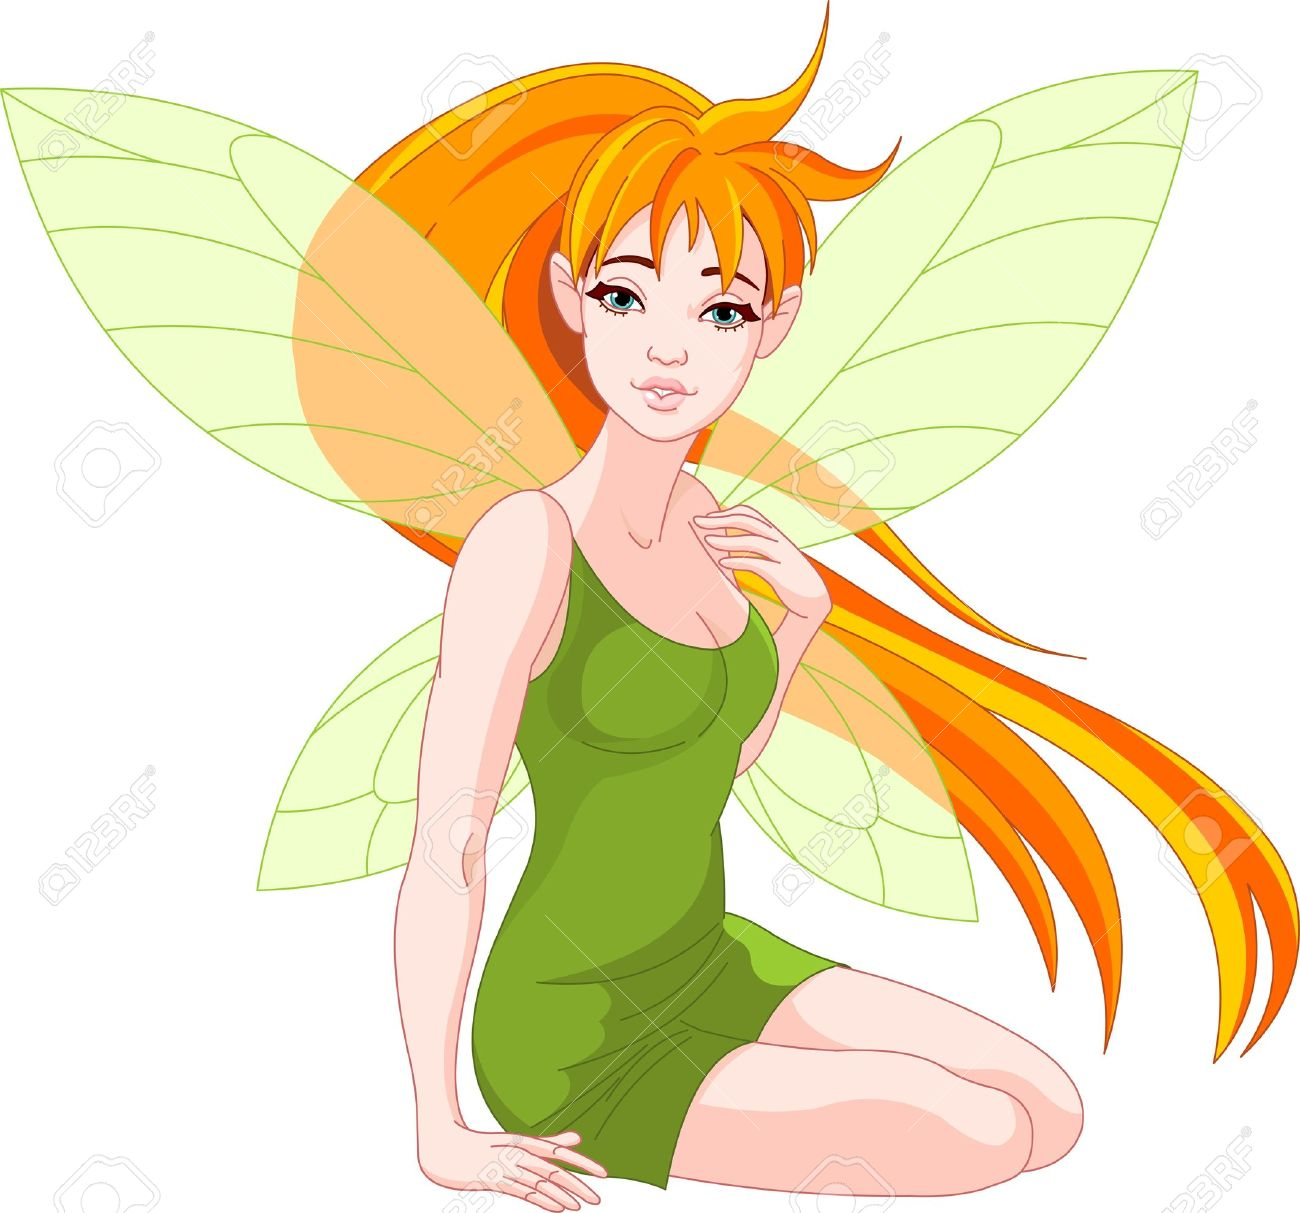 Pixie clipart #2, Download drawings